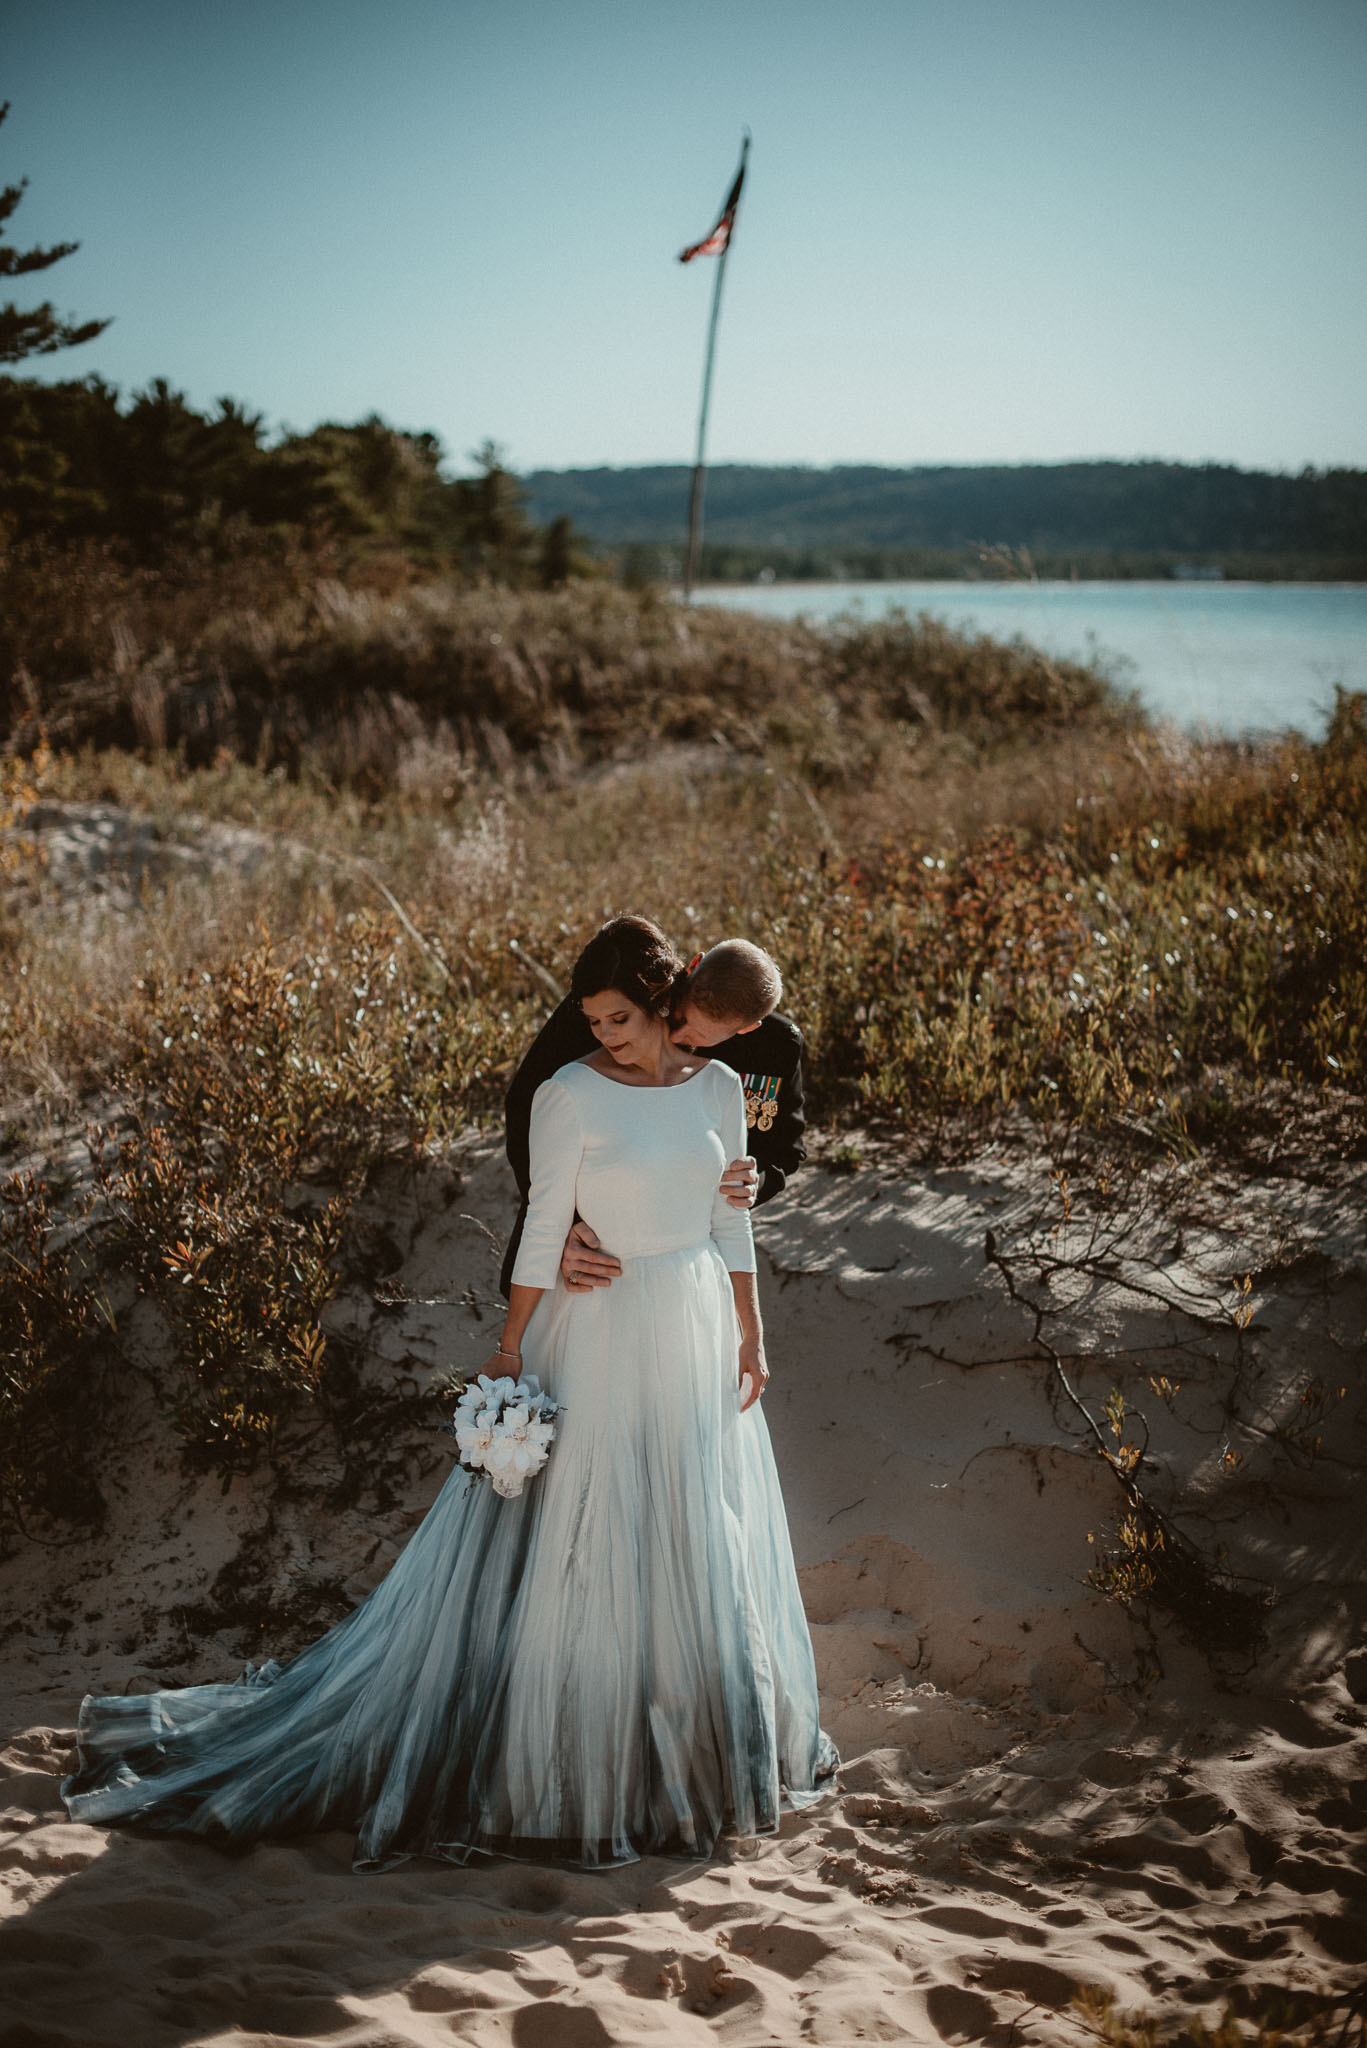 The groom kissing his brides shoulder holding her from behind with Lake Michigan in the background.